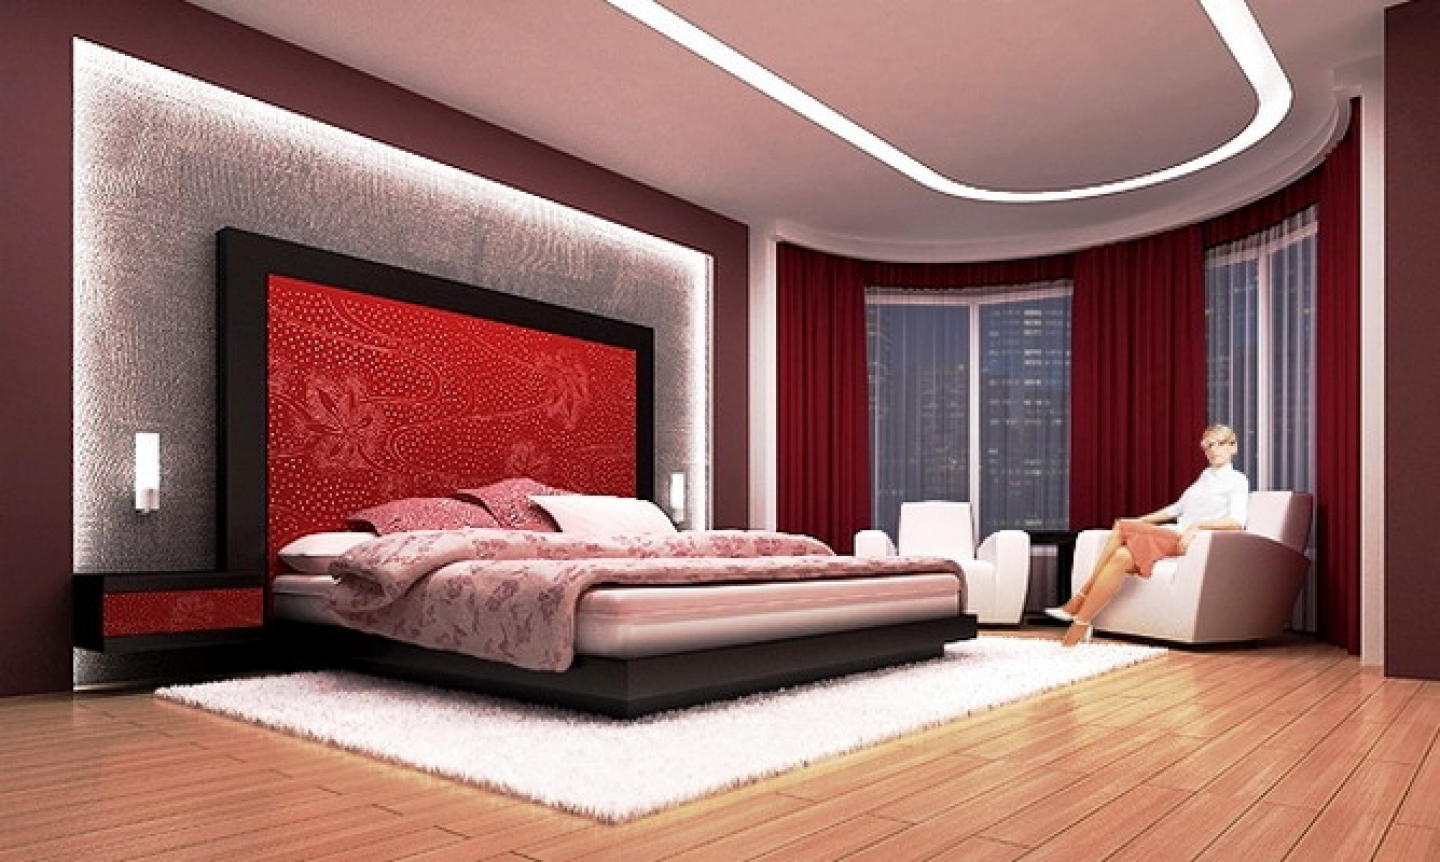 Bedroom design ideas for couples Photo - 1